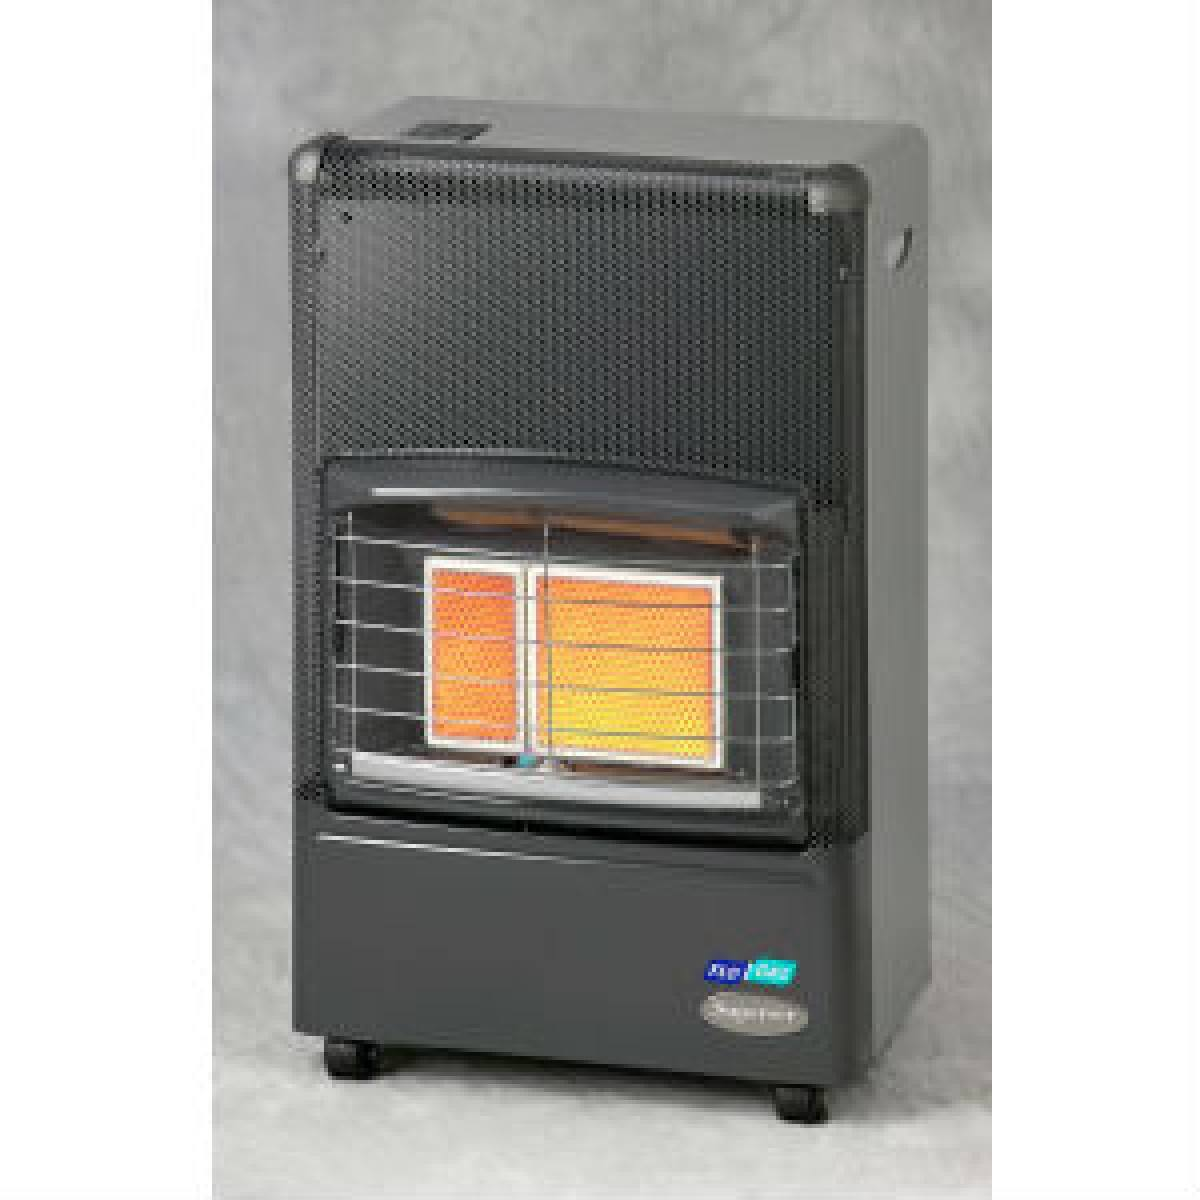 Flogas Superser Radiant Portable Gas Heater F150